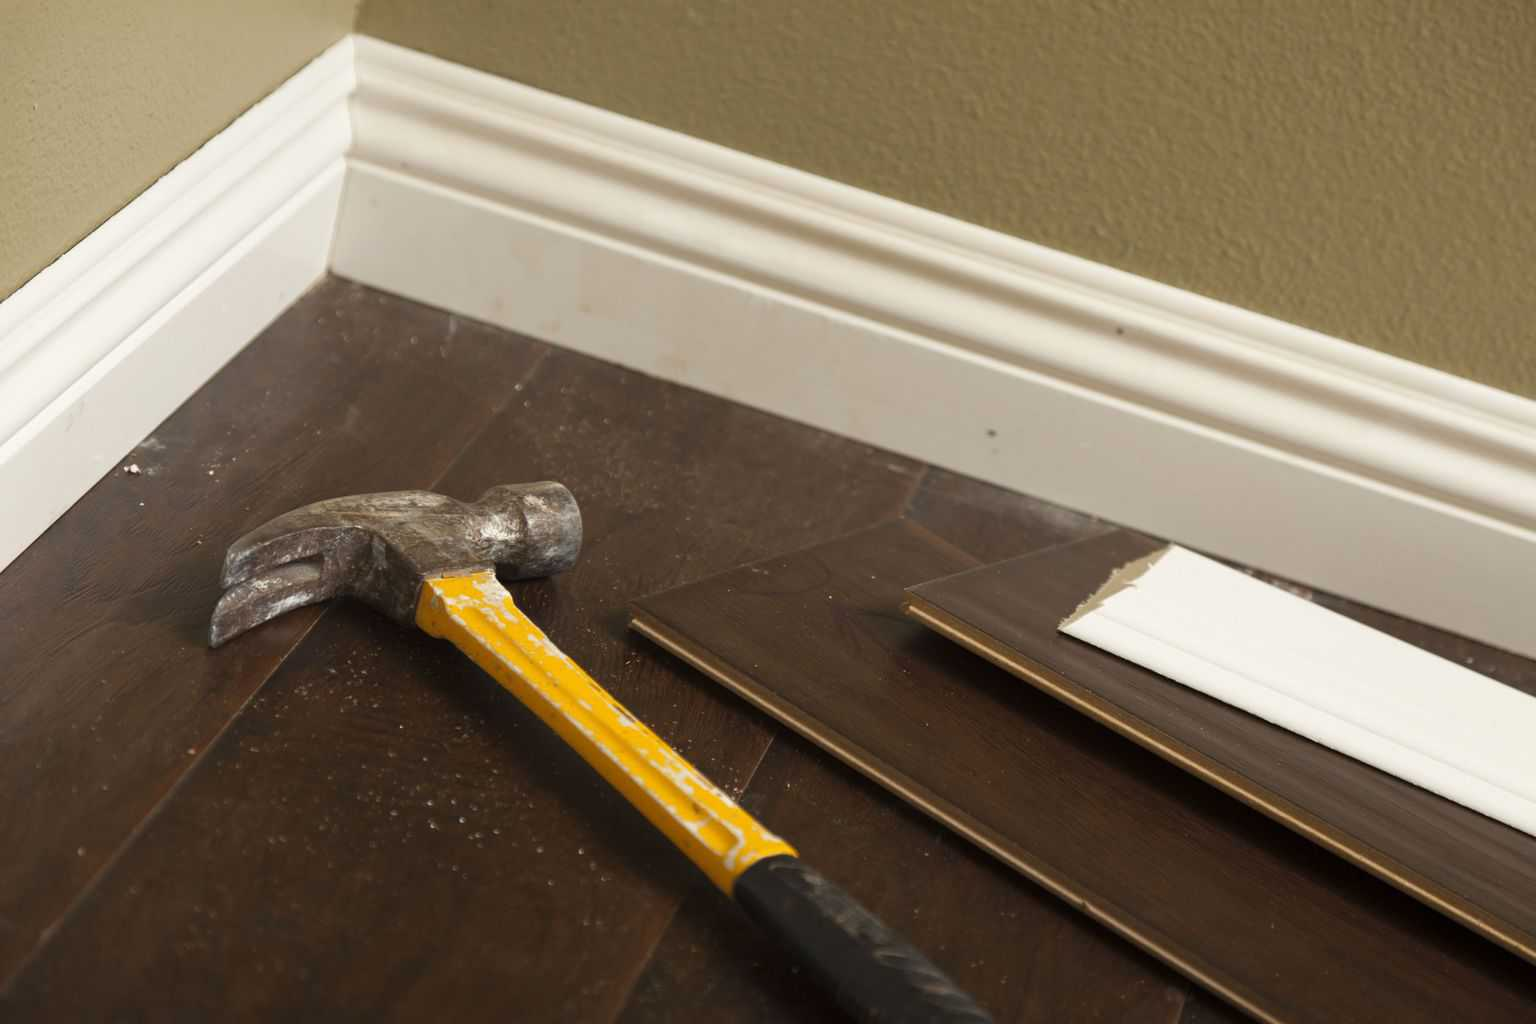 Removing Laminate Flooring how to remove glue and adhesive from floors todays homeowner Before You Begin The Task Of Removing Your Laminate Floor You Should Complete A Few Things